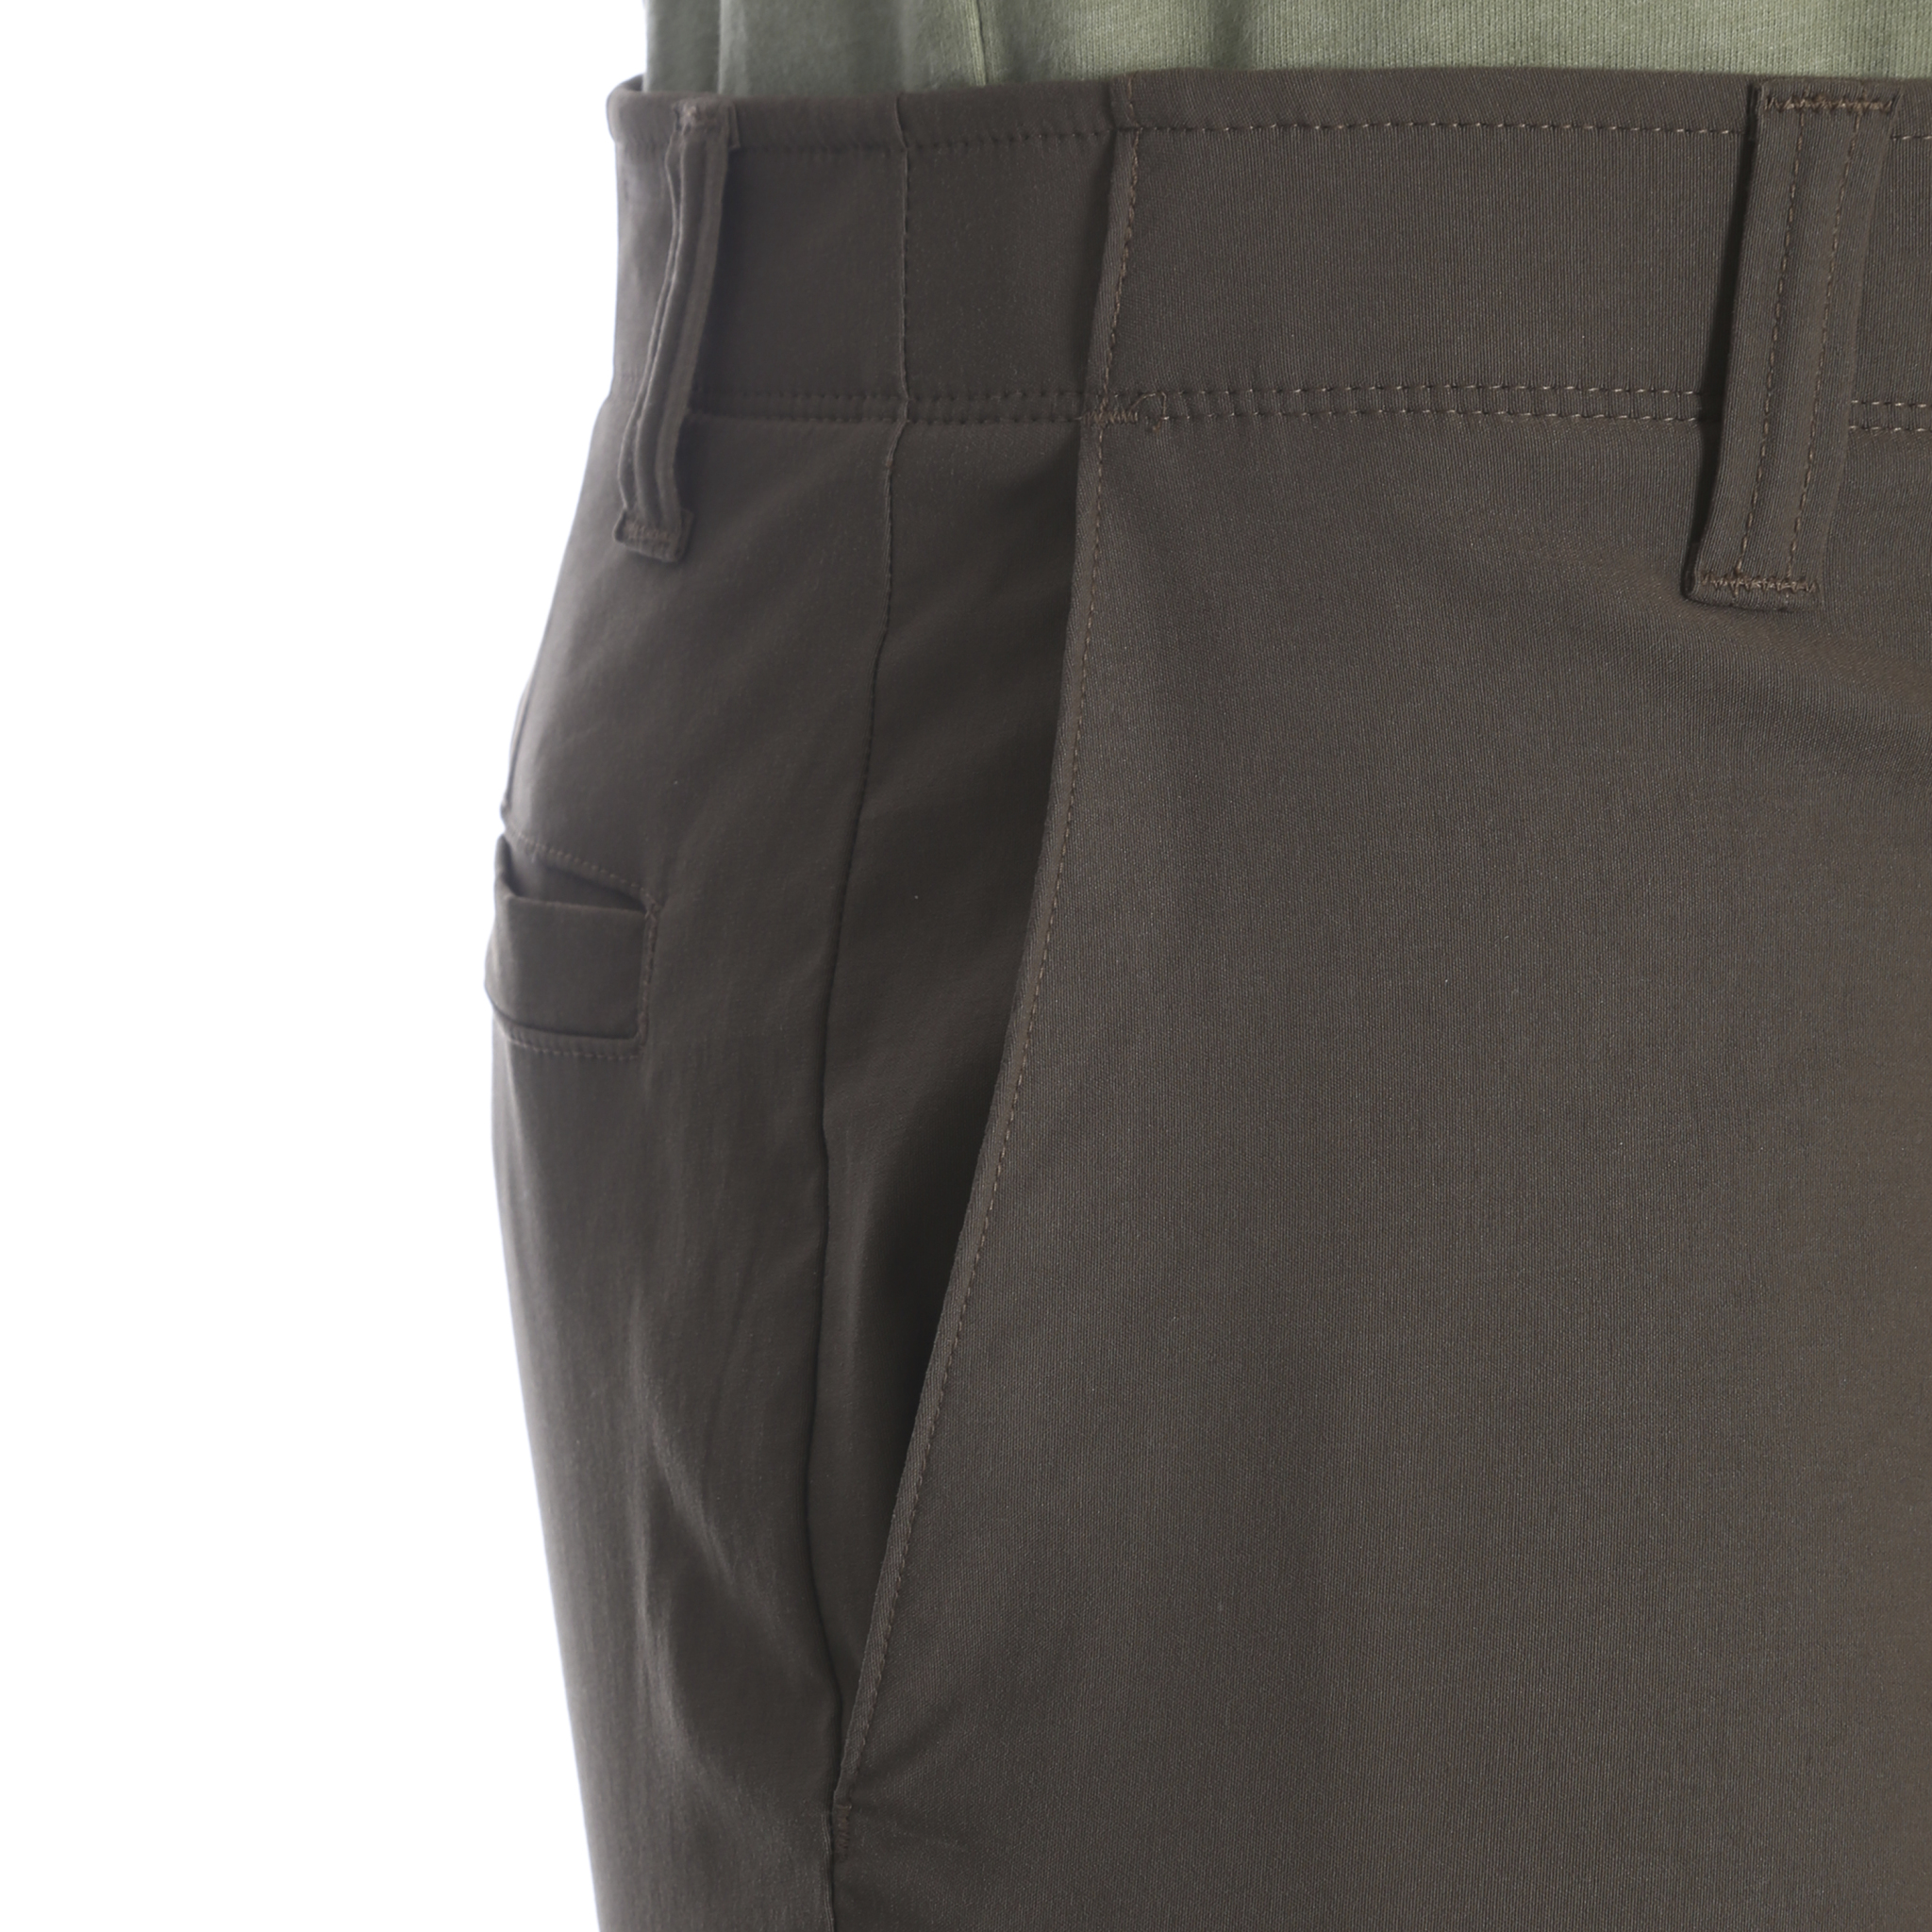 Wrangler-Neuf-Solide-Homme-Performance-Series-Outdoor-Confort-Coupe-Droite-Pantalon miniature 12